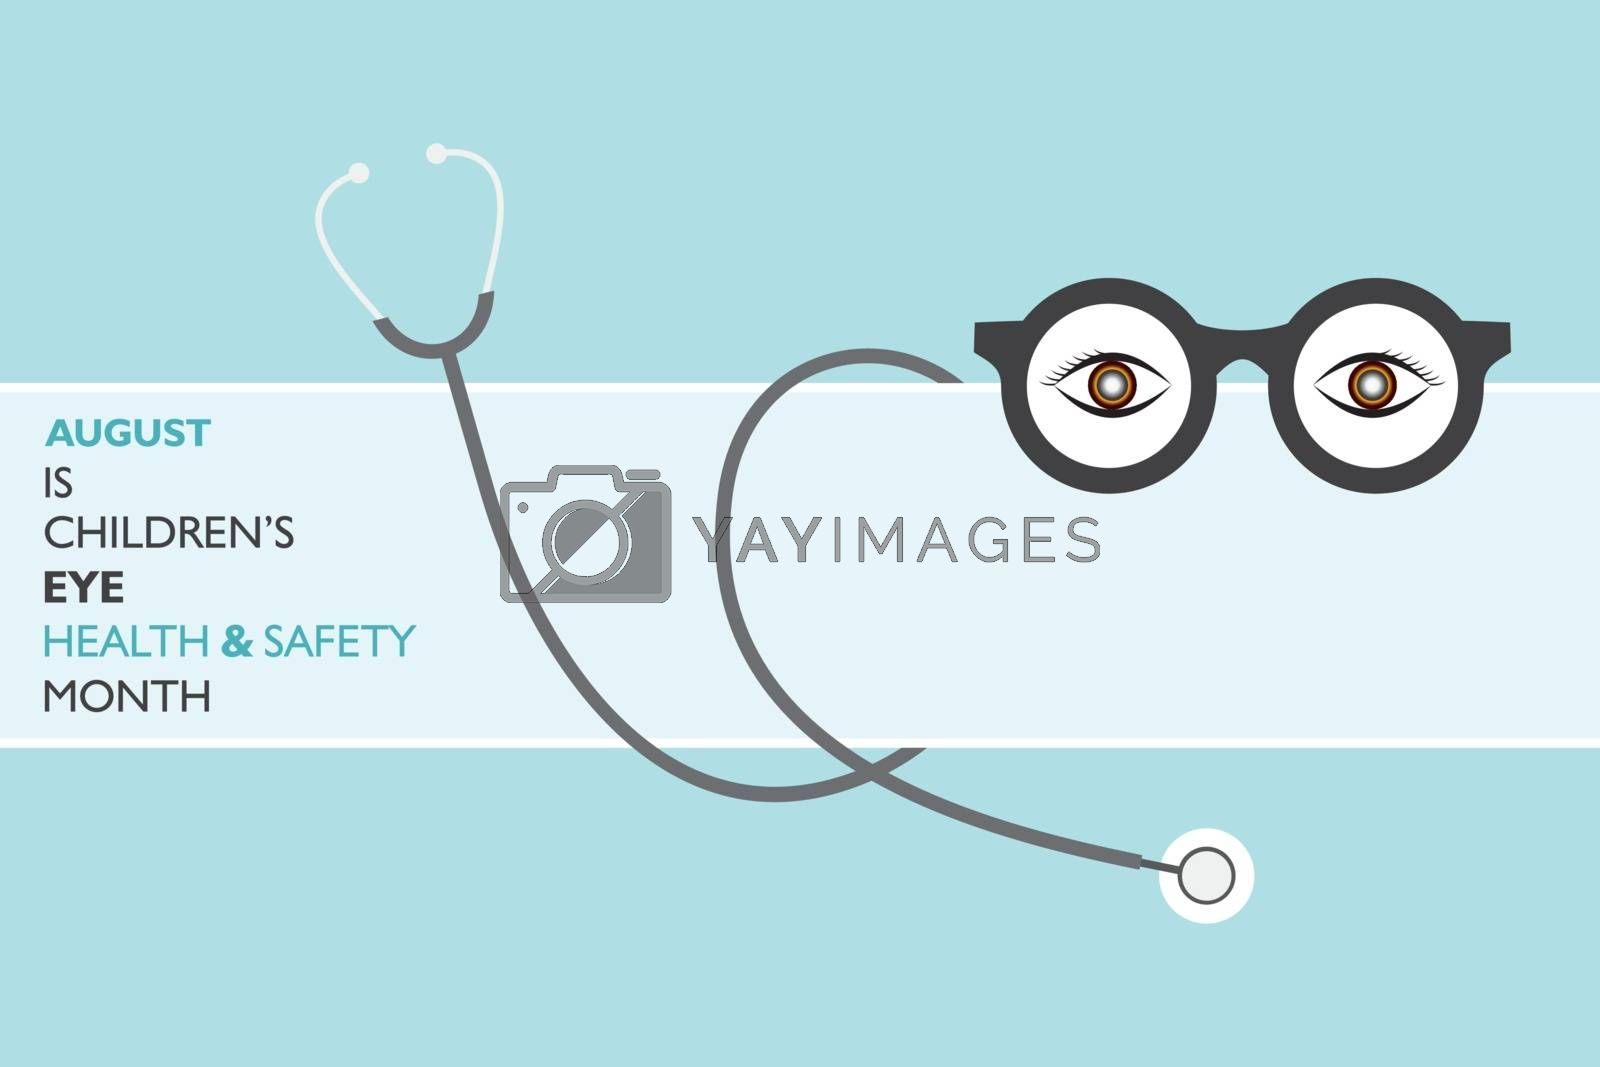 Children's Eye Health and Safety Month observed in August by graphicsdunia4you